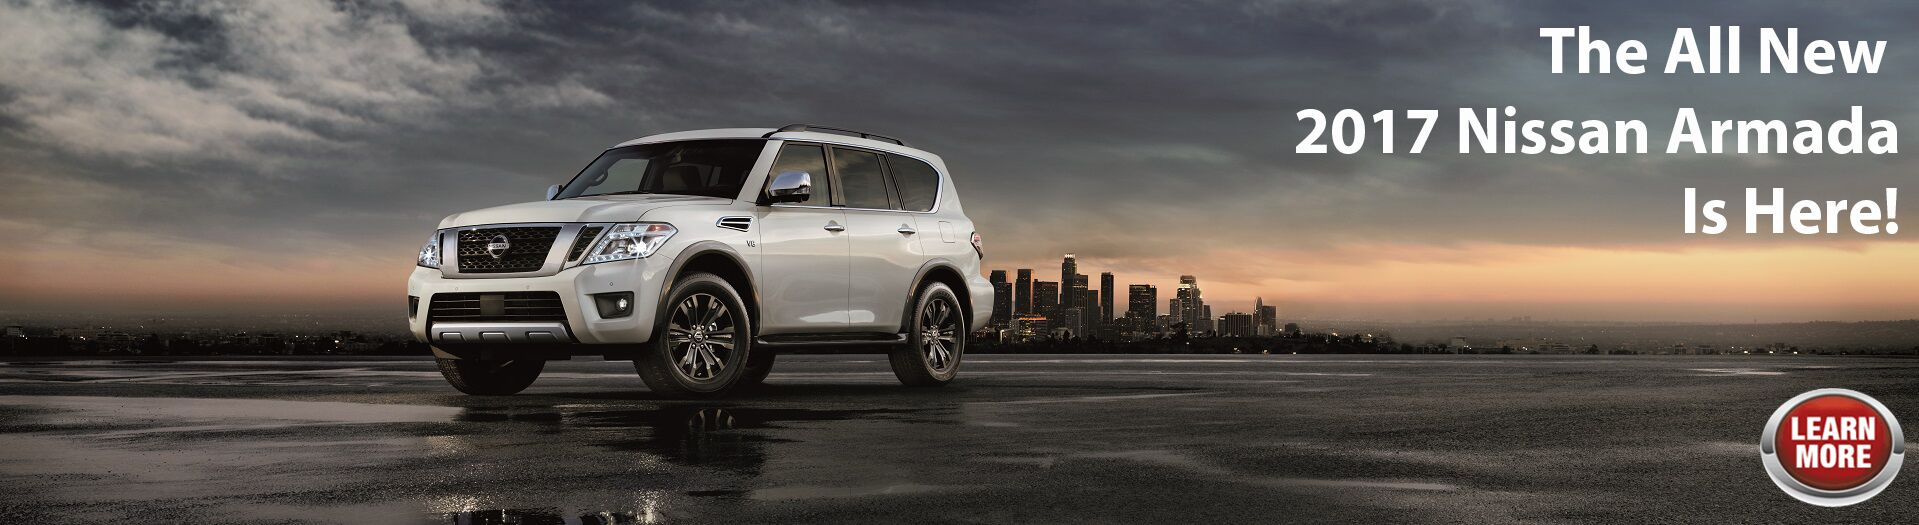 2017 Nissan Armada Is Here